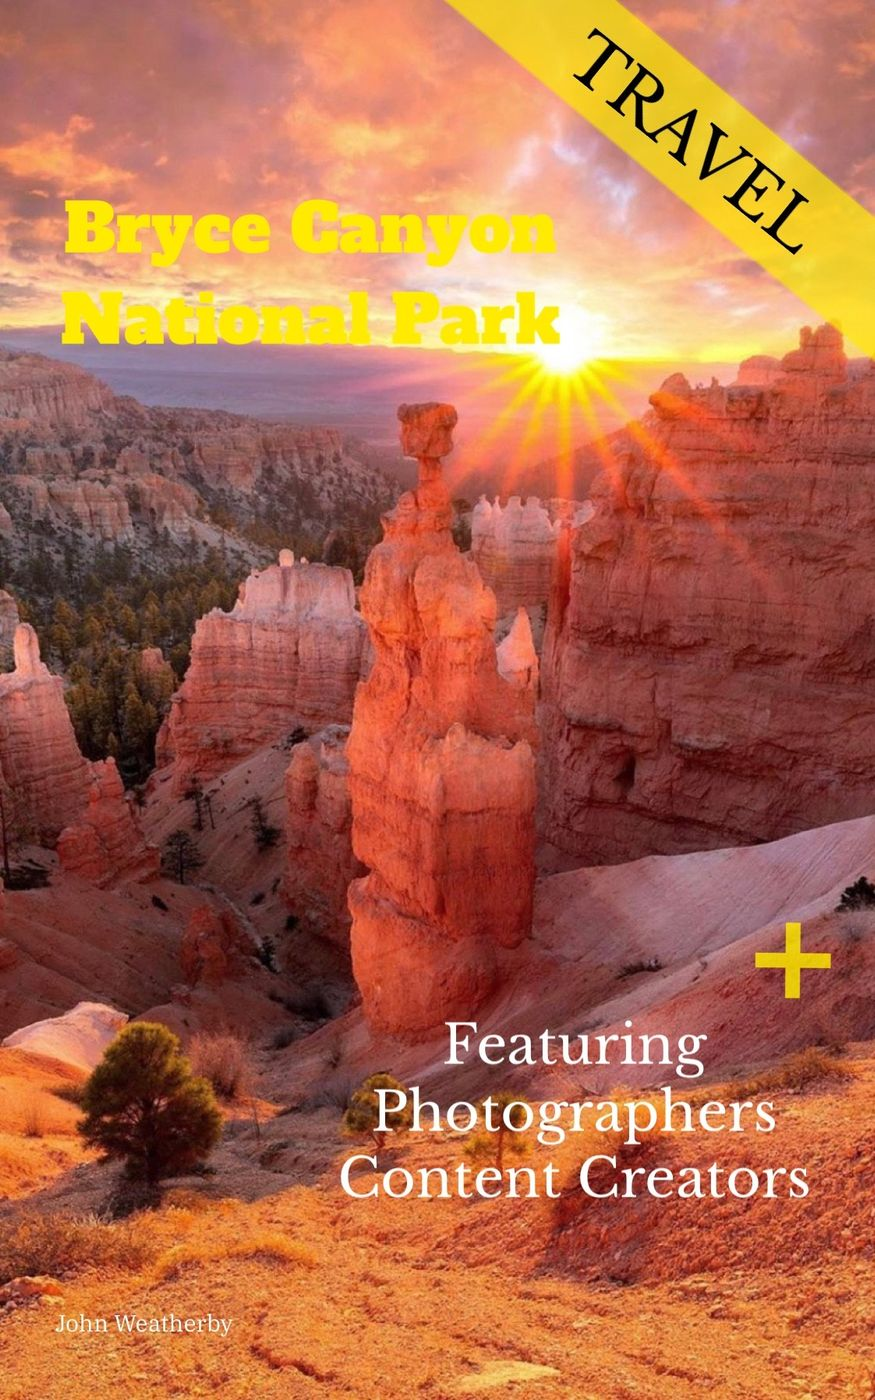 Featuring content creators and photographers | Bryce Canton National Park 🧗🏻♂️